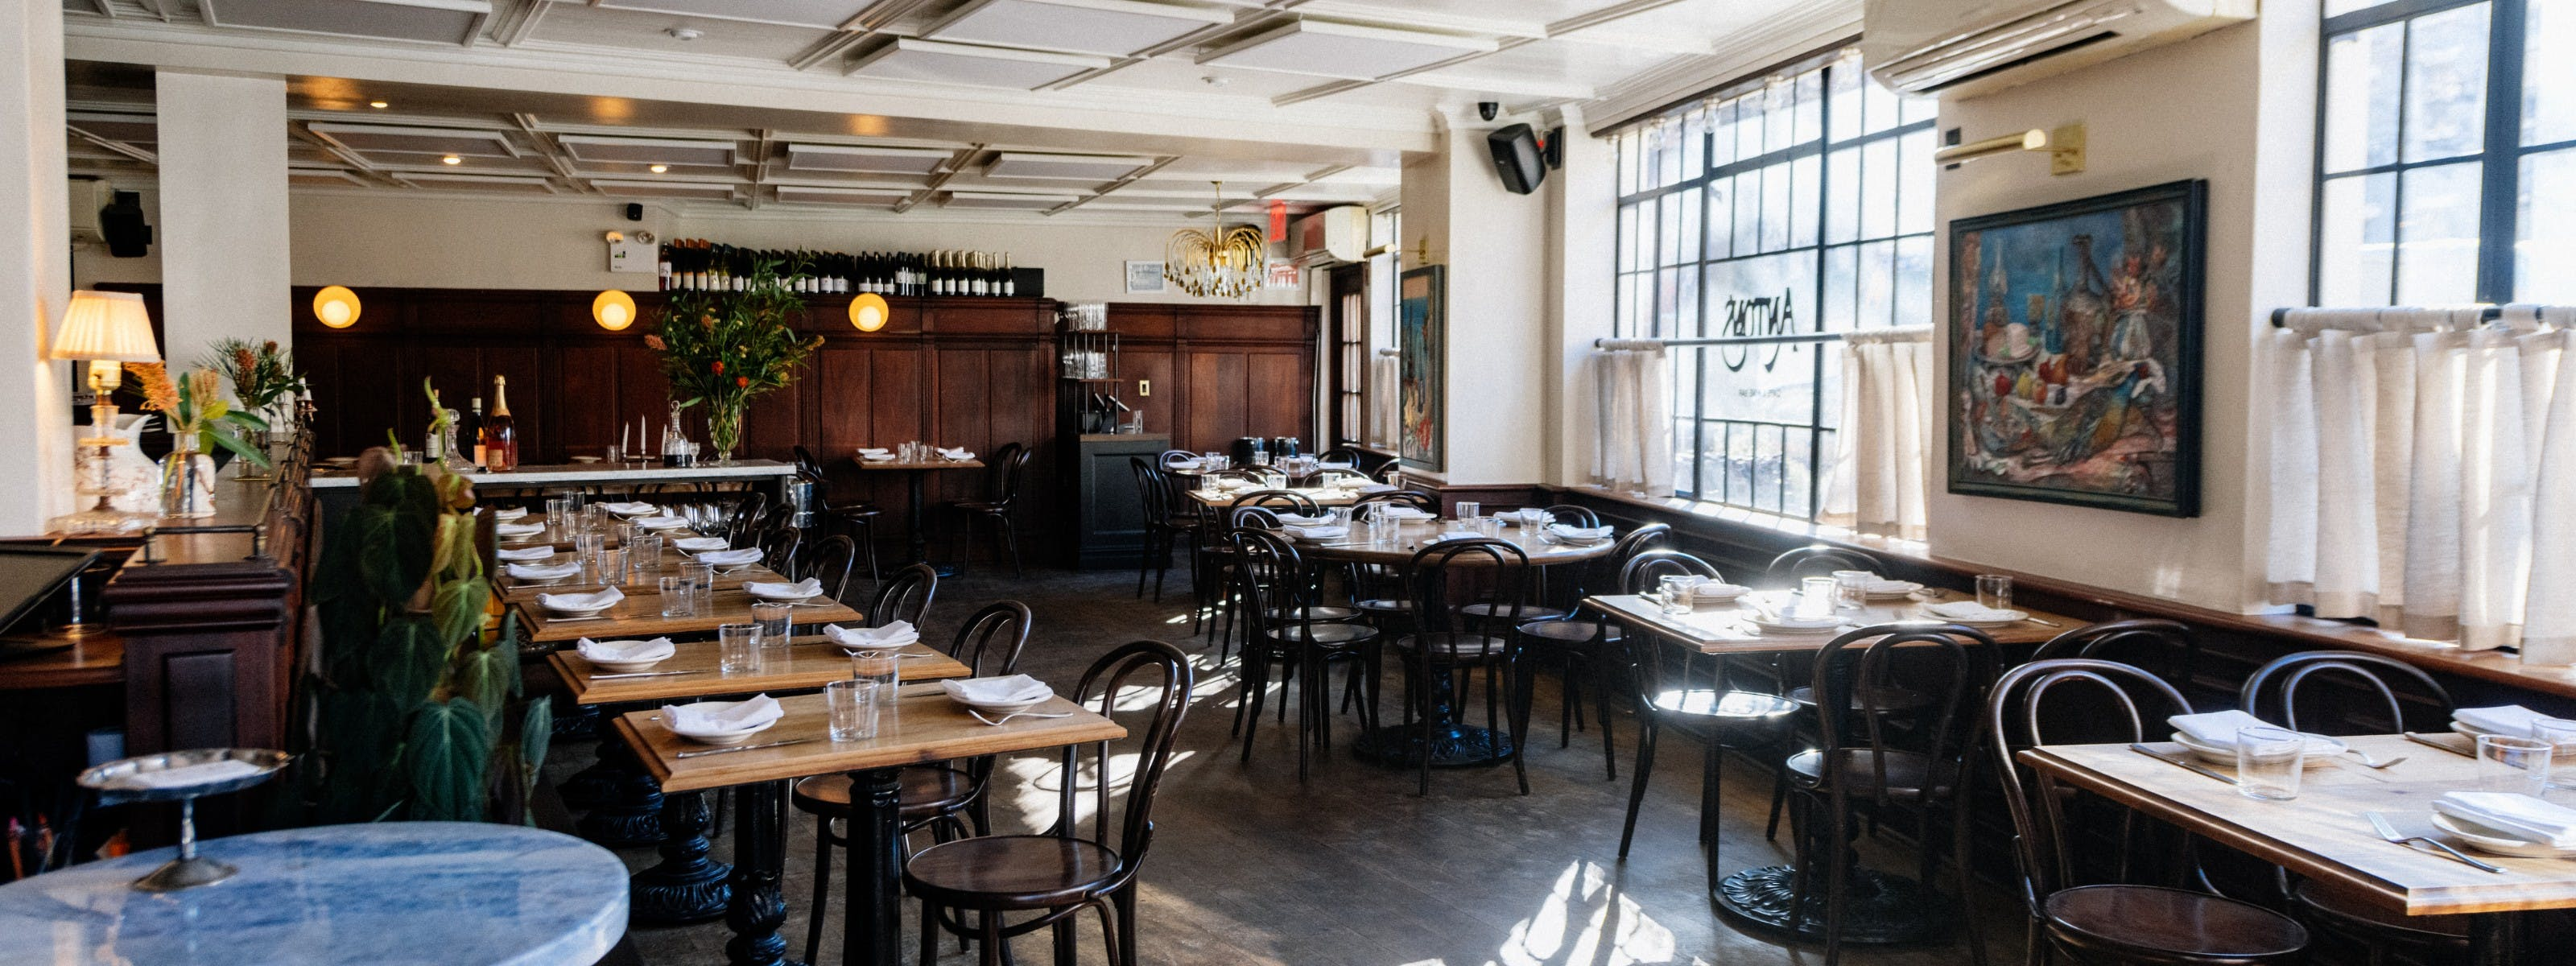 The Best Restaurants In The West Village West Village New York The Infatuation